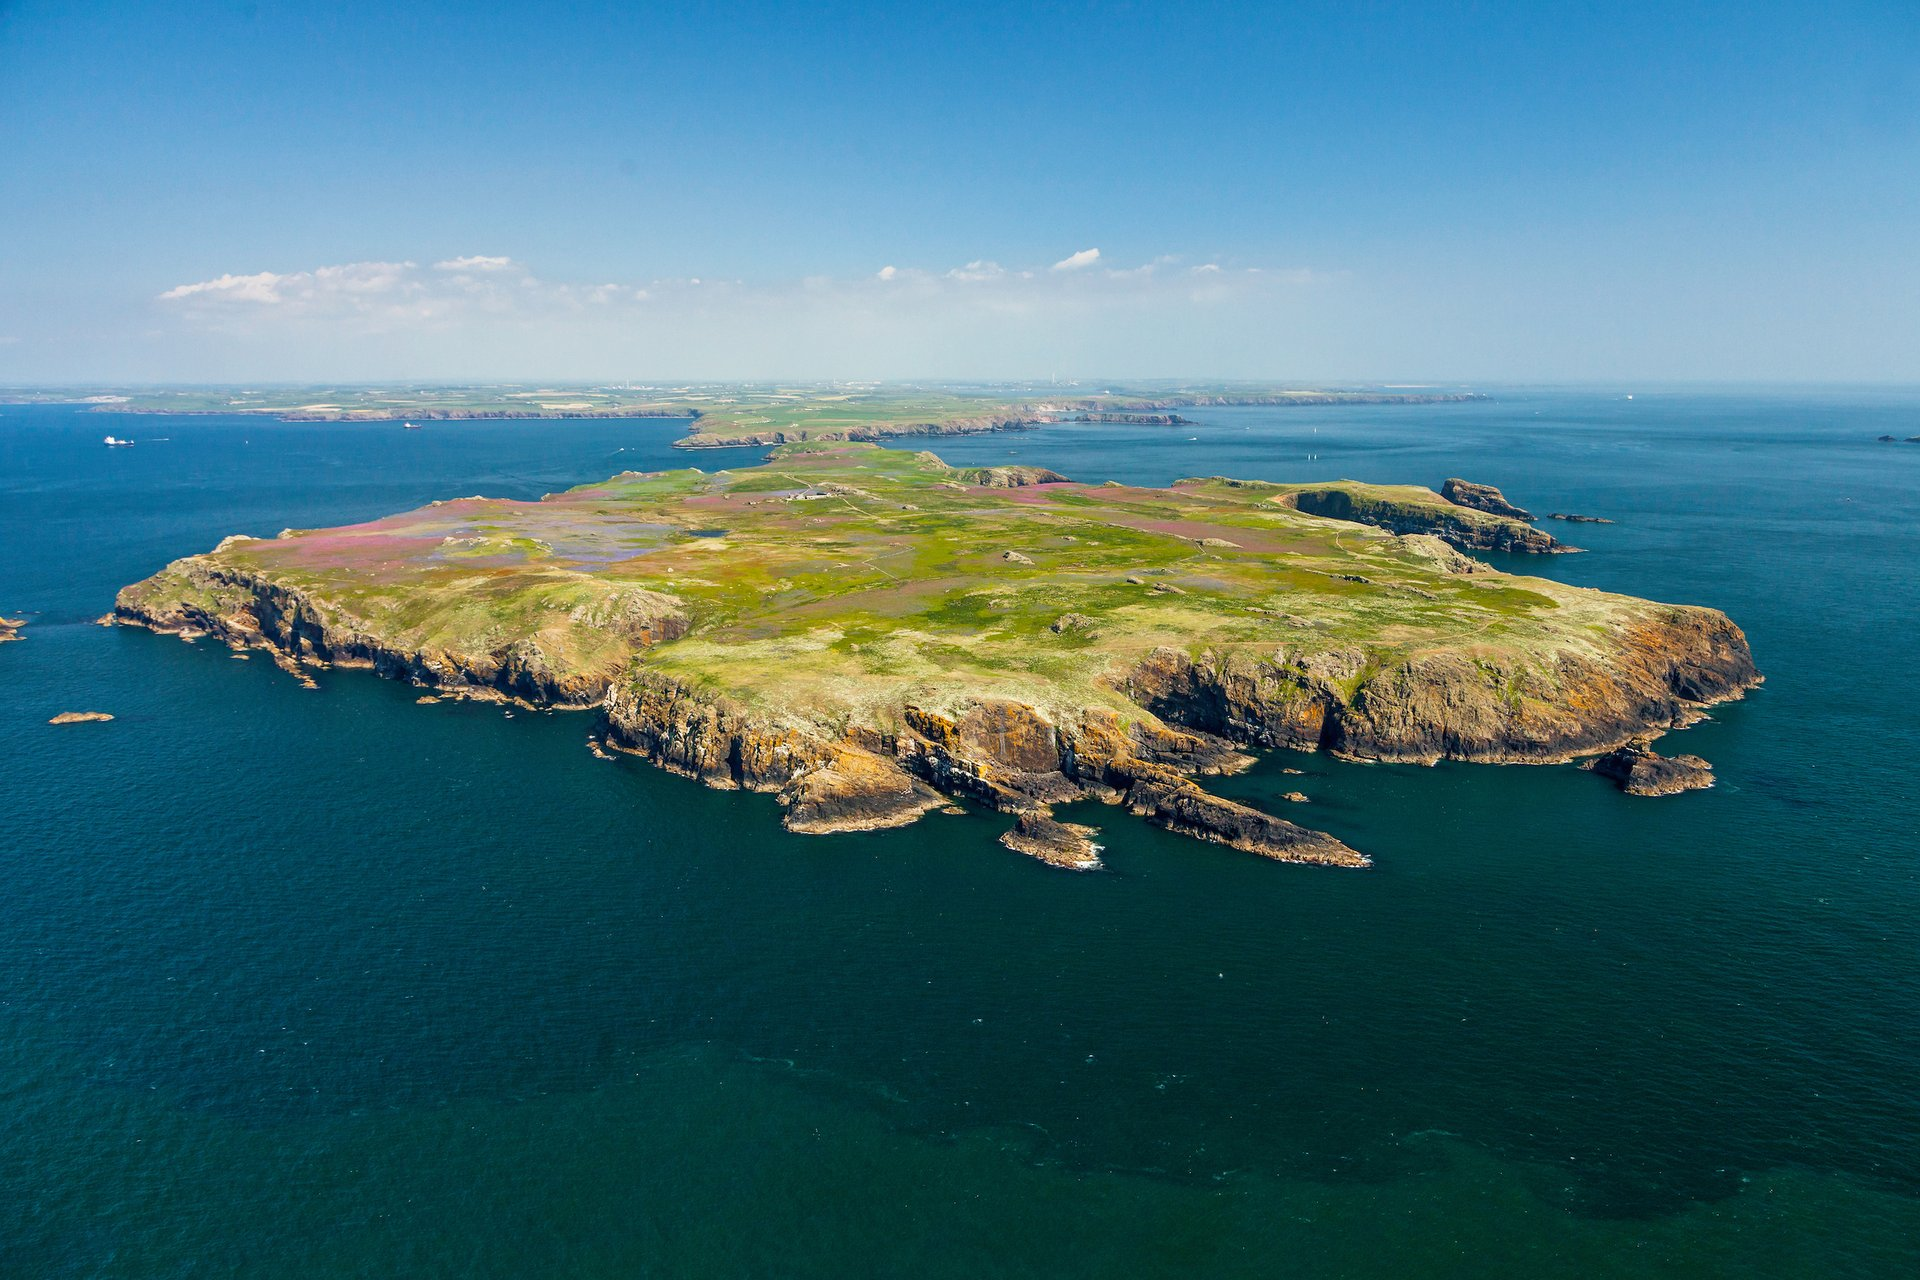 Aerial view of Skomer Island 2020